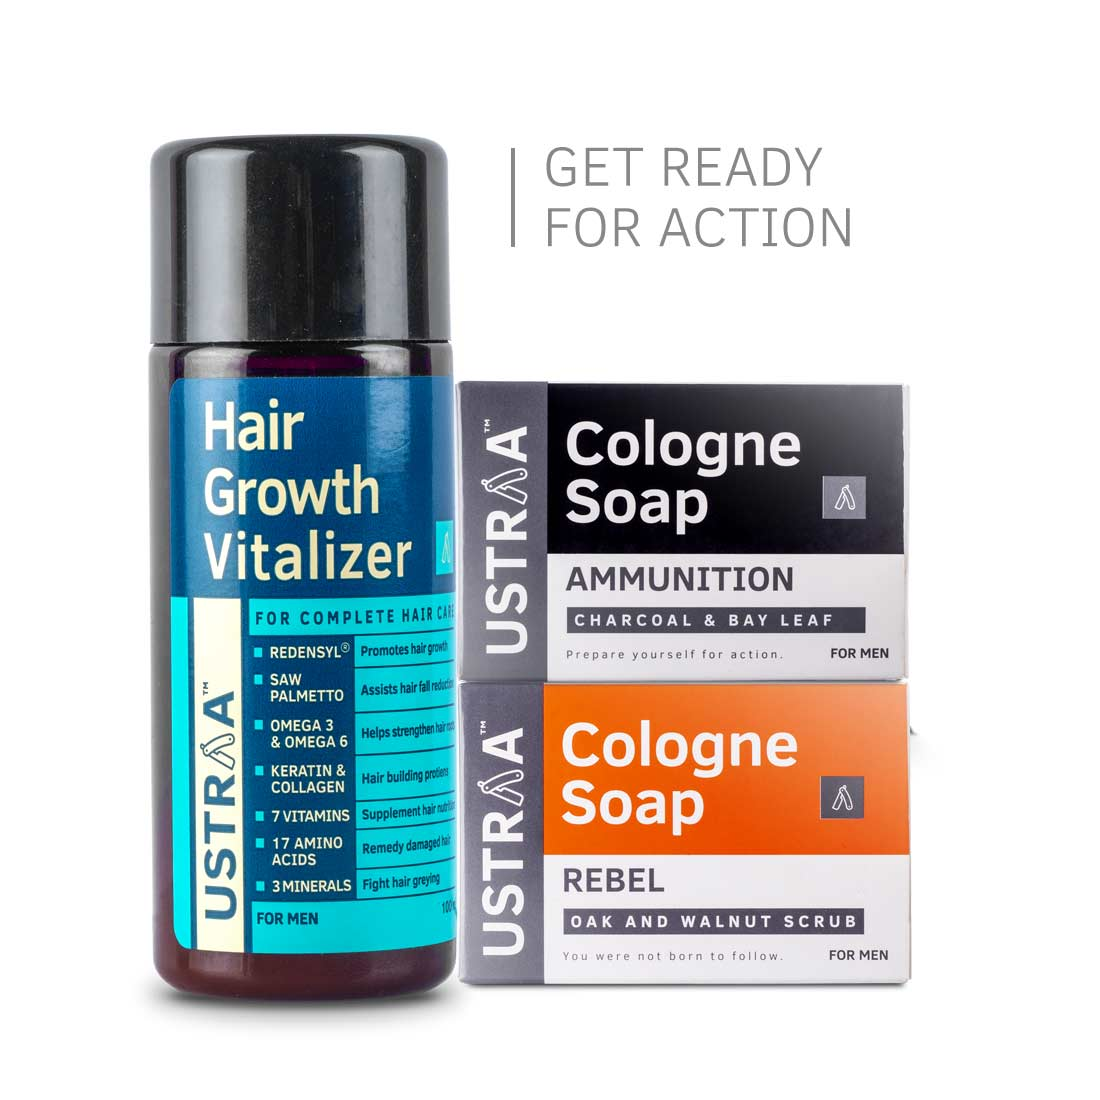 Hair Growth Vitalizer and 2 Cologne Soaps